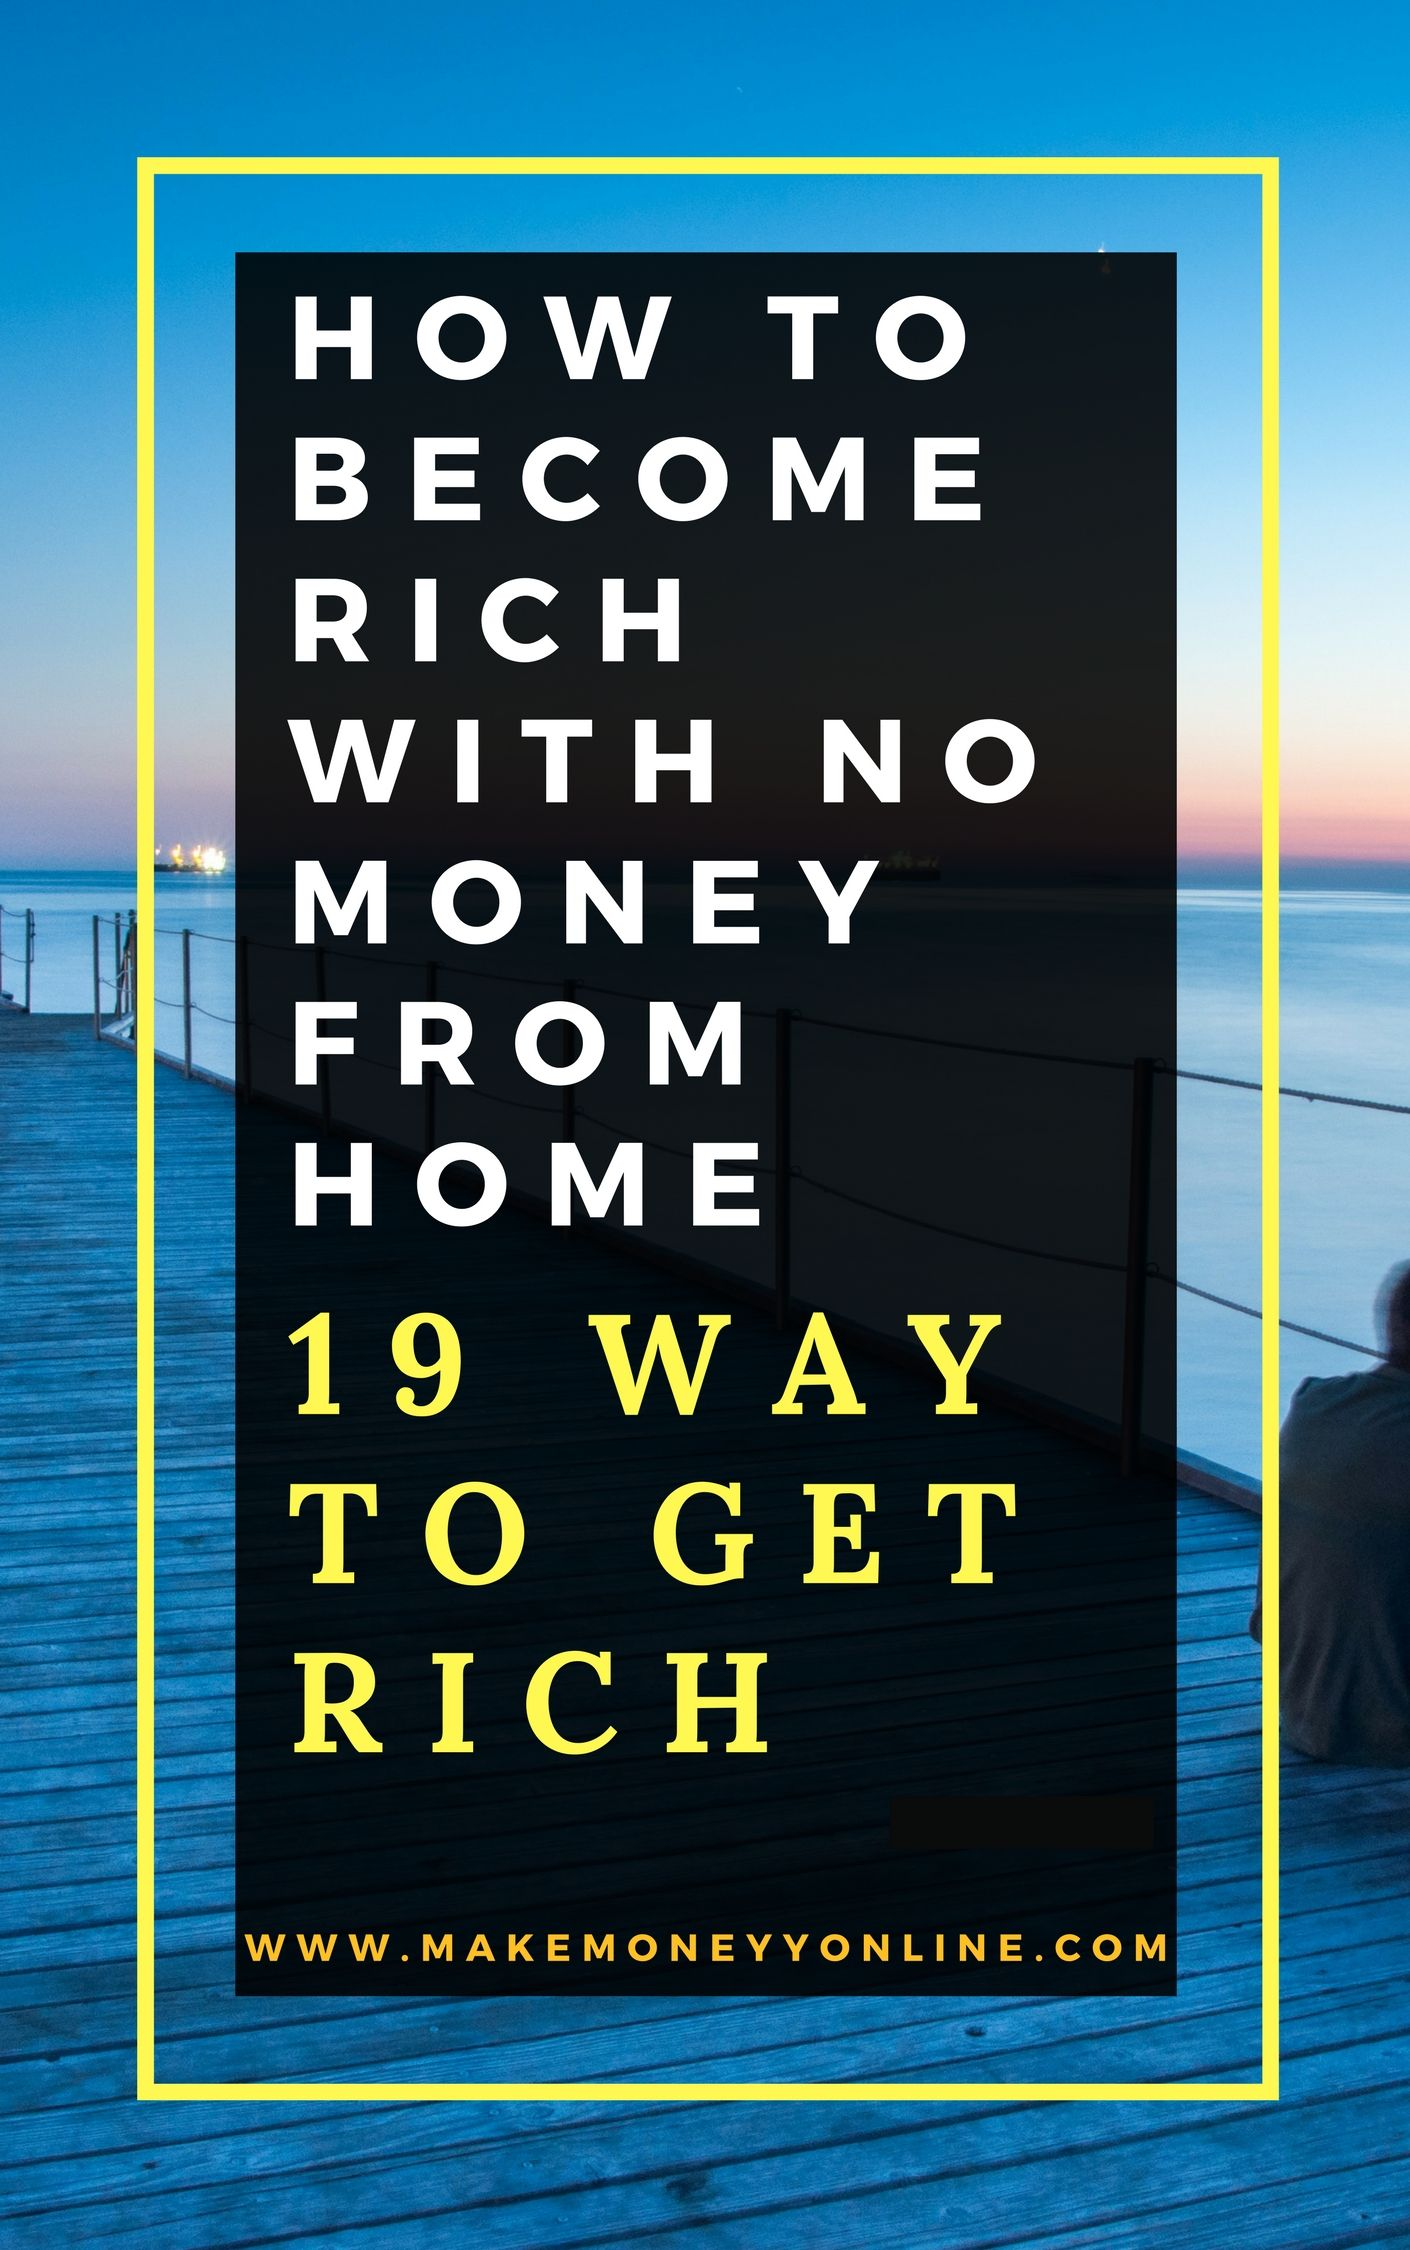 How To Become Rich With No Money From Home 19 Way To Get Rich